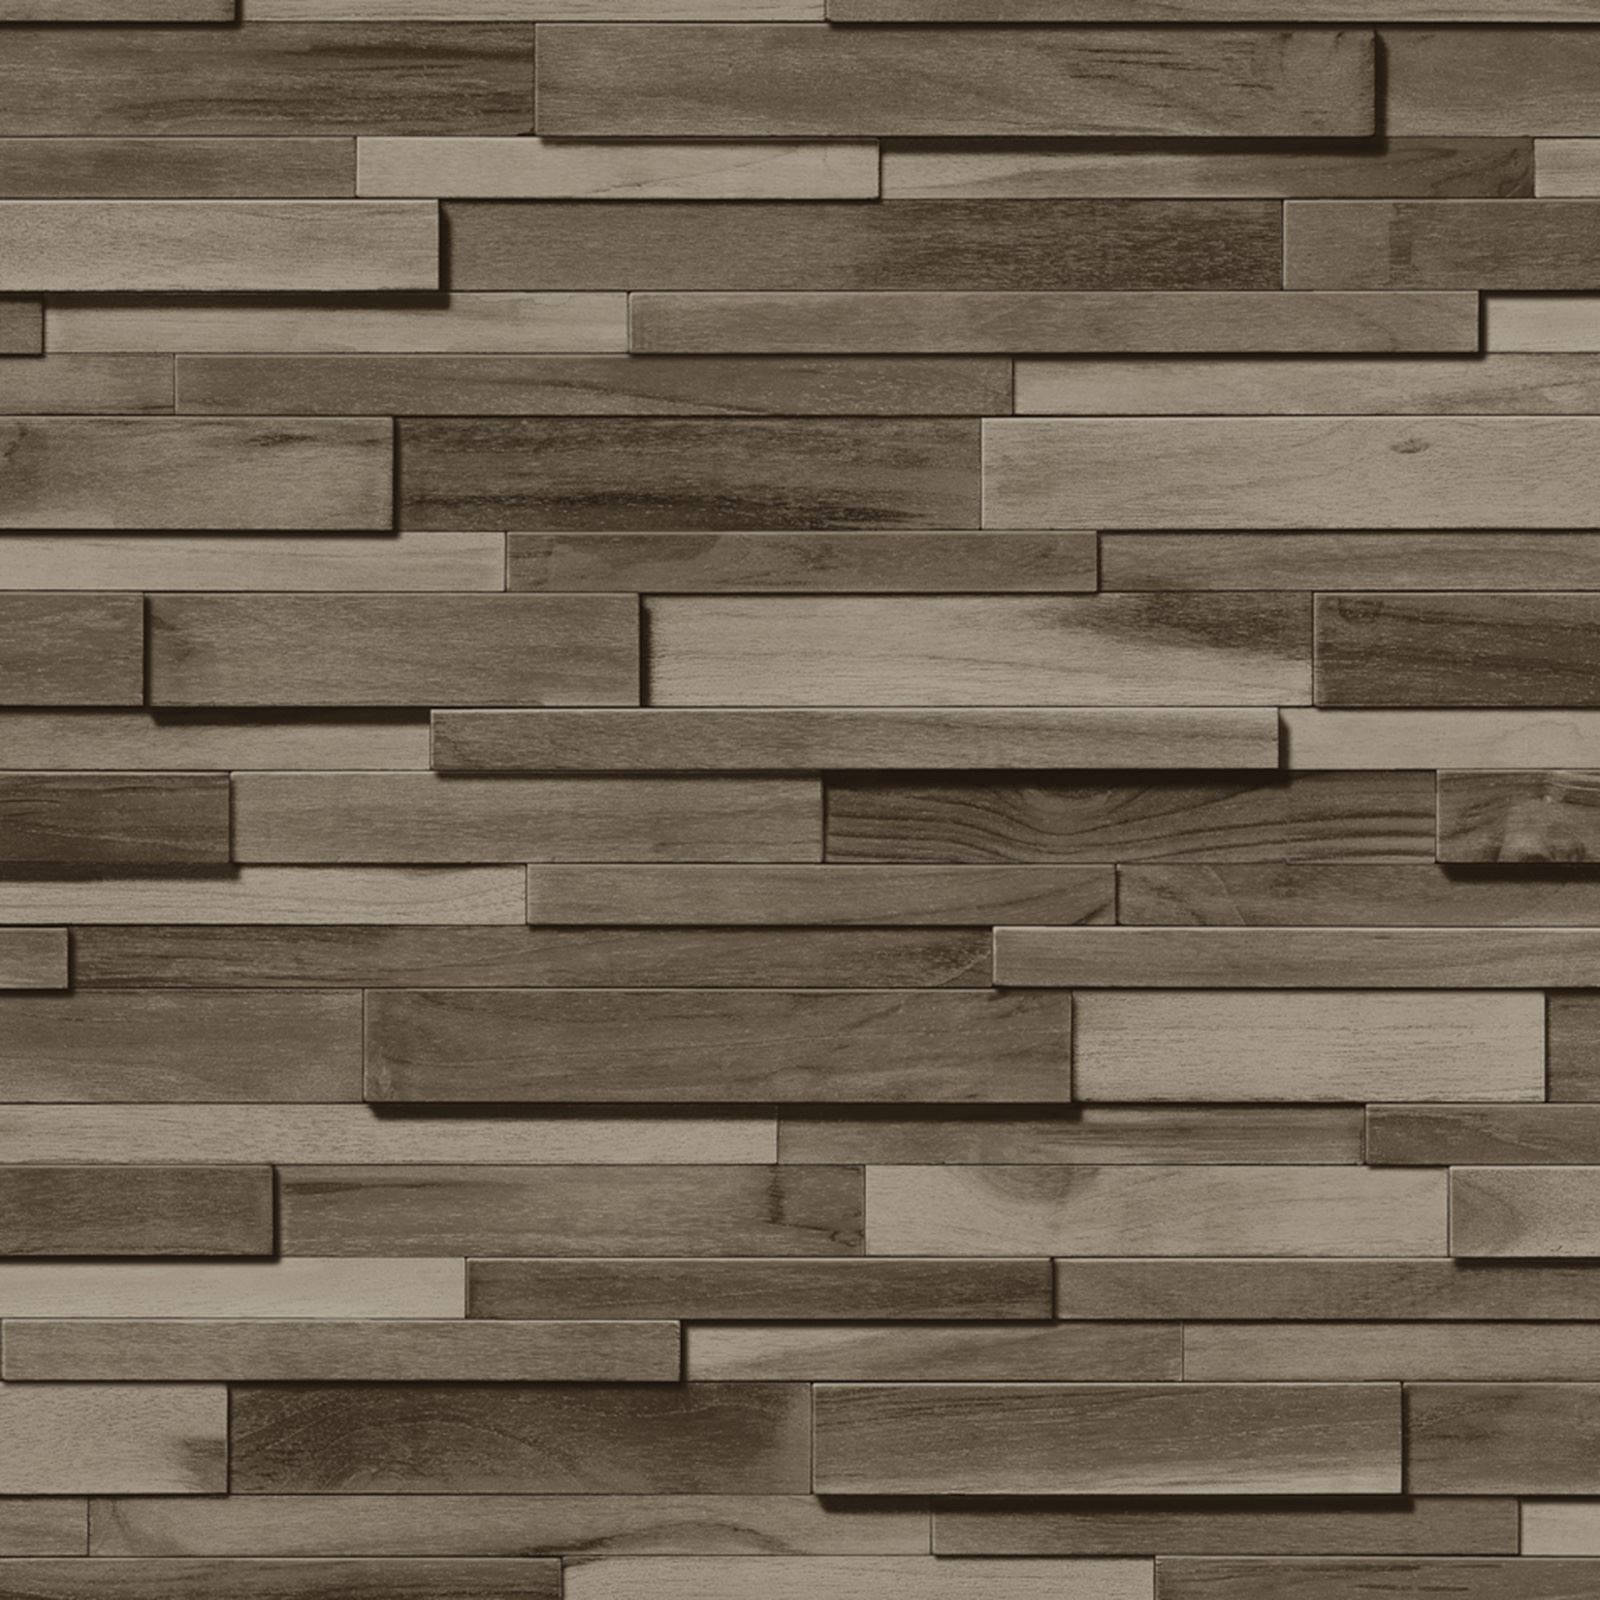 Download Wallpaper Marble Wood - 351568964765_images  Graphic_35270.jpeg